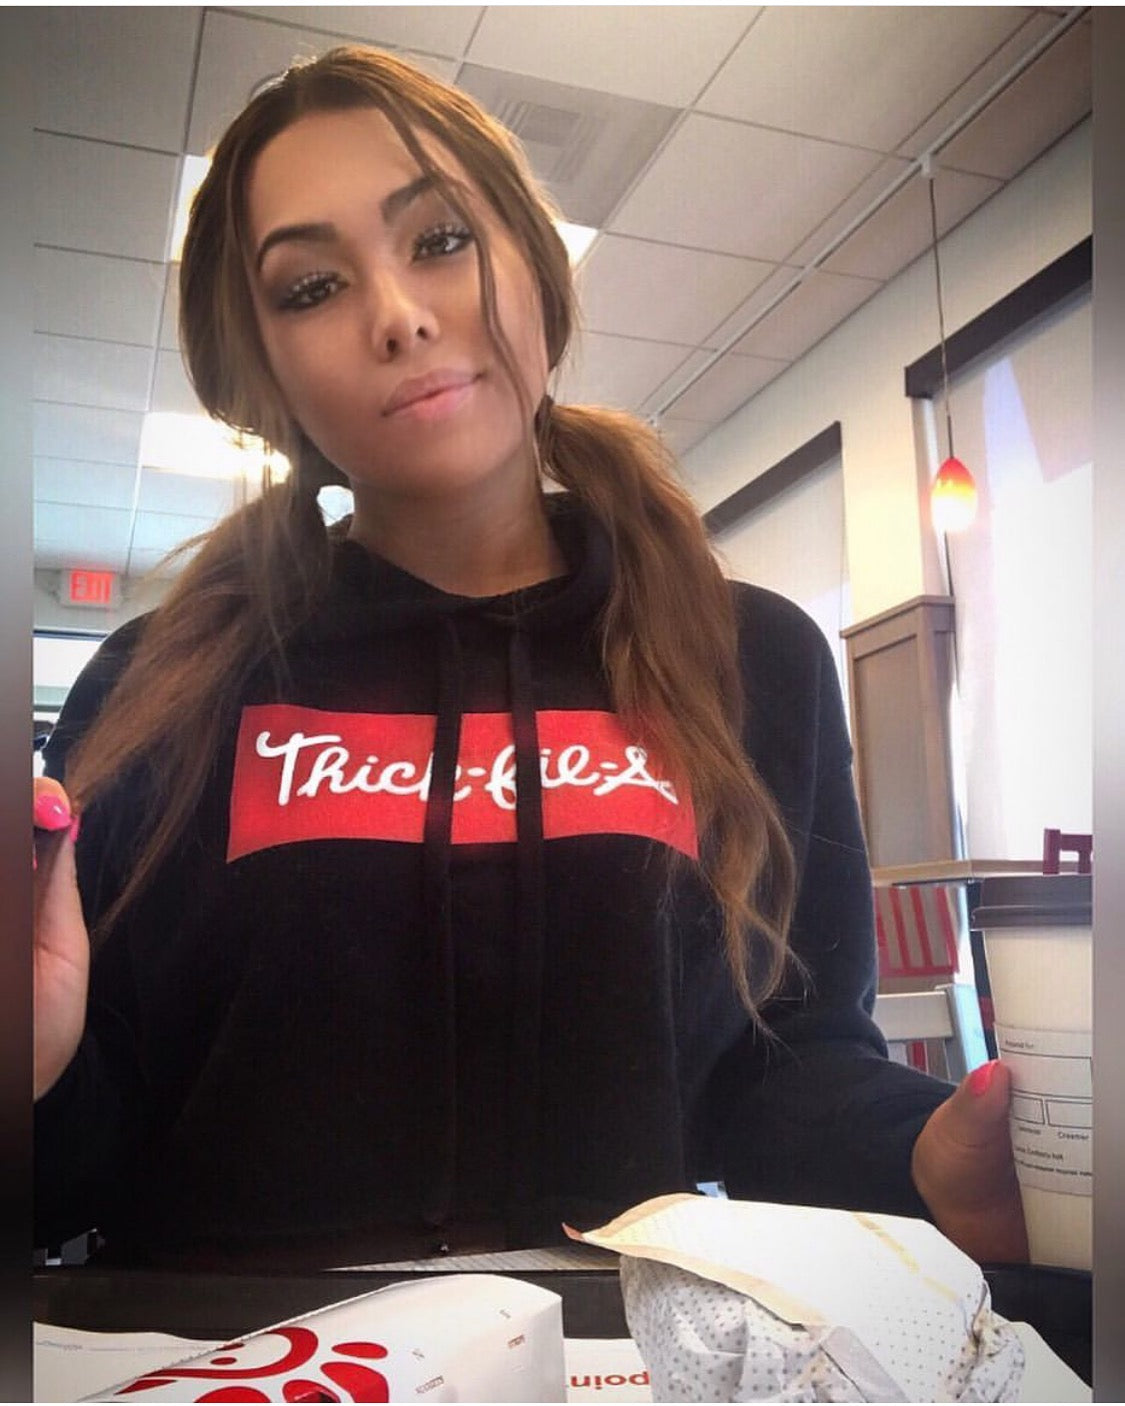 Thick-fil-a Hoodie